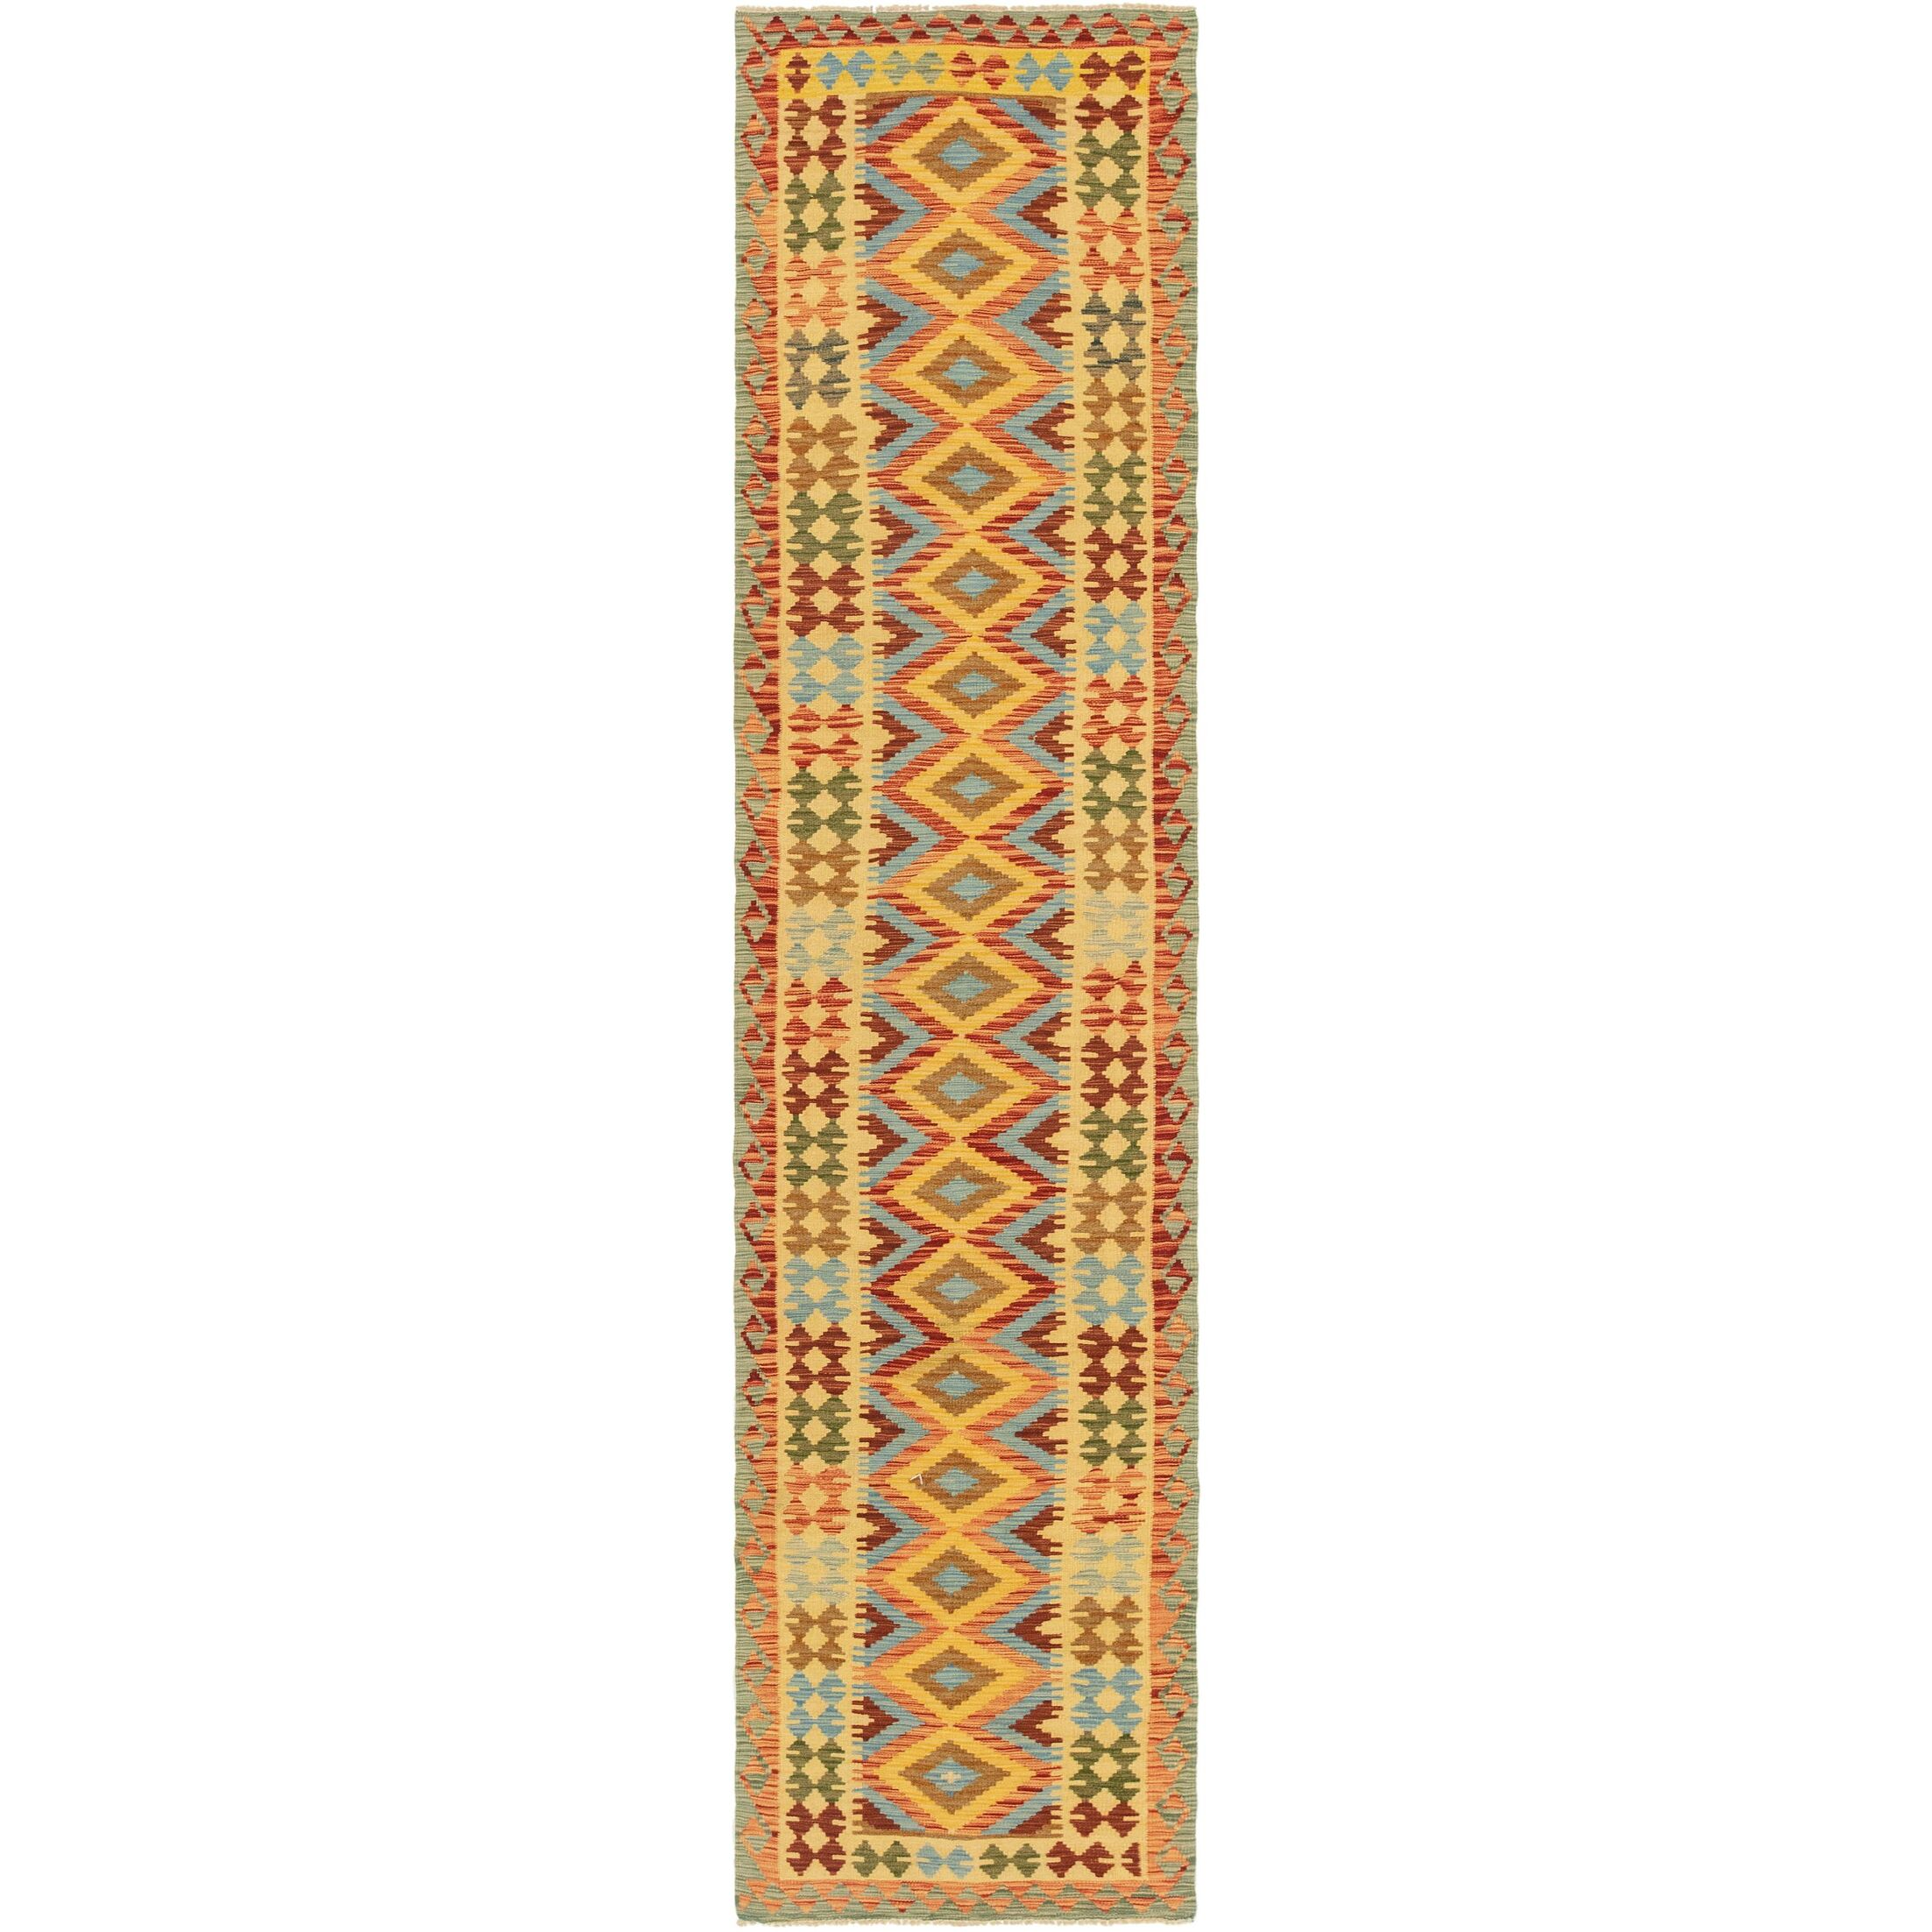 One-of-a-Kind Lorain Hand-Knotted Runner 2'9